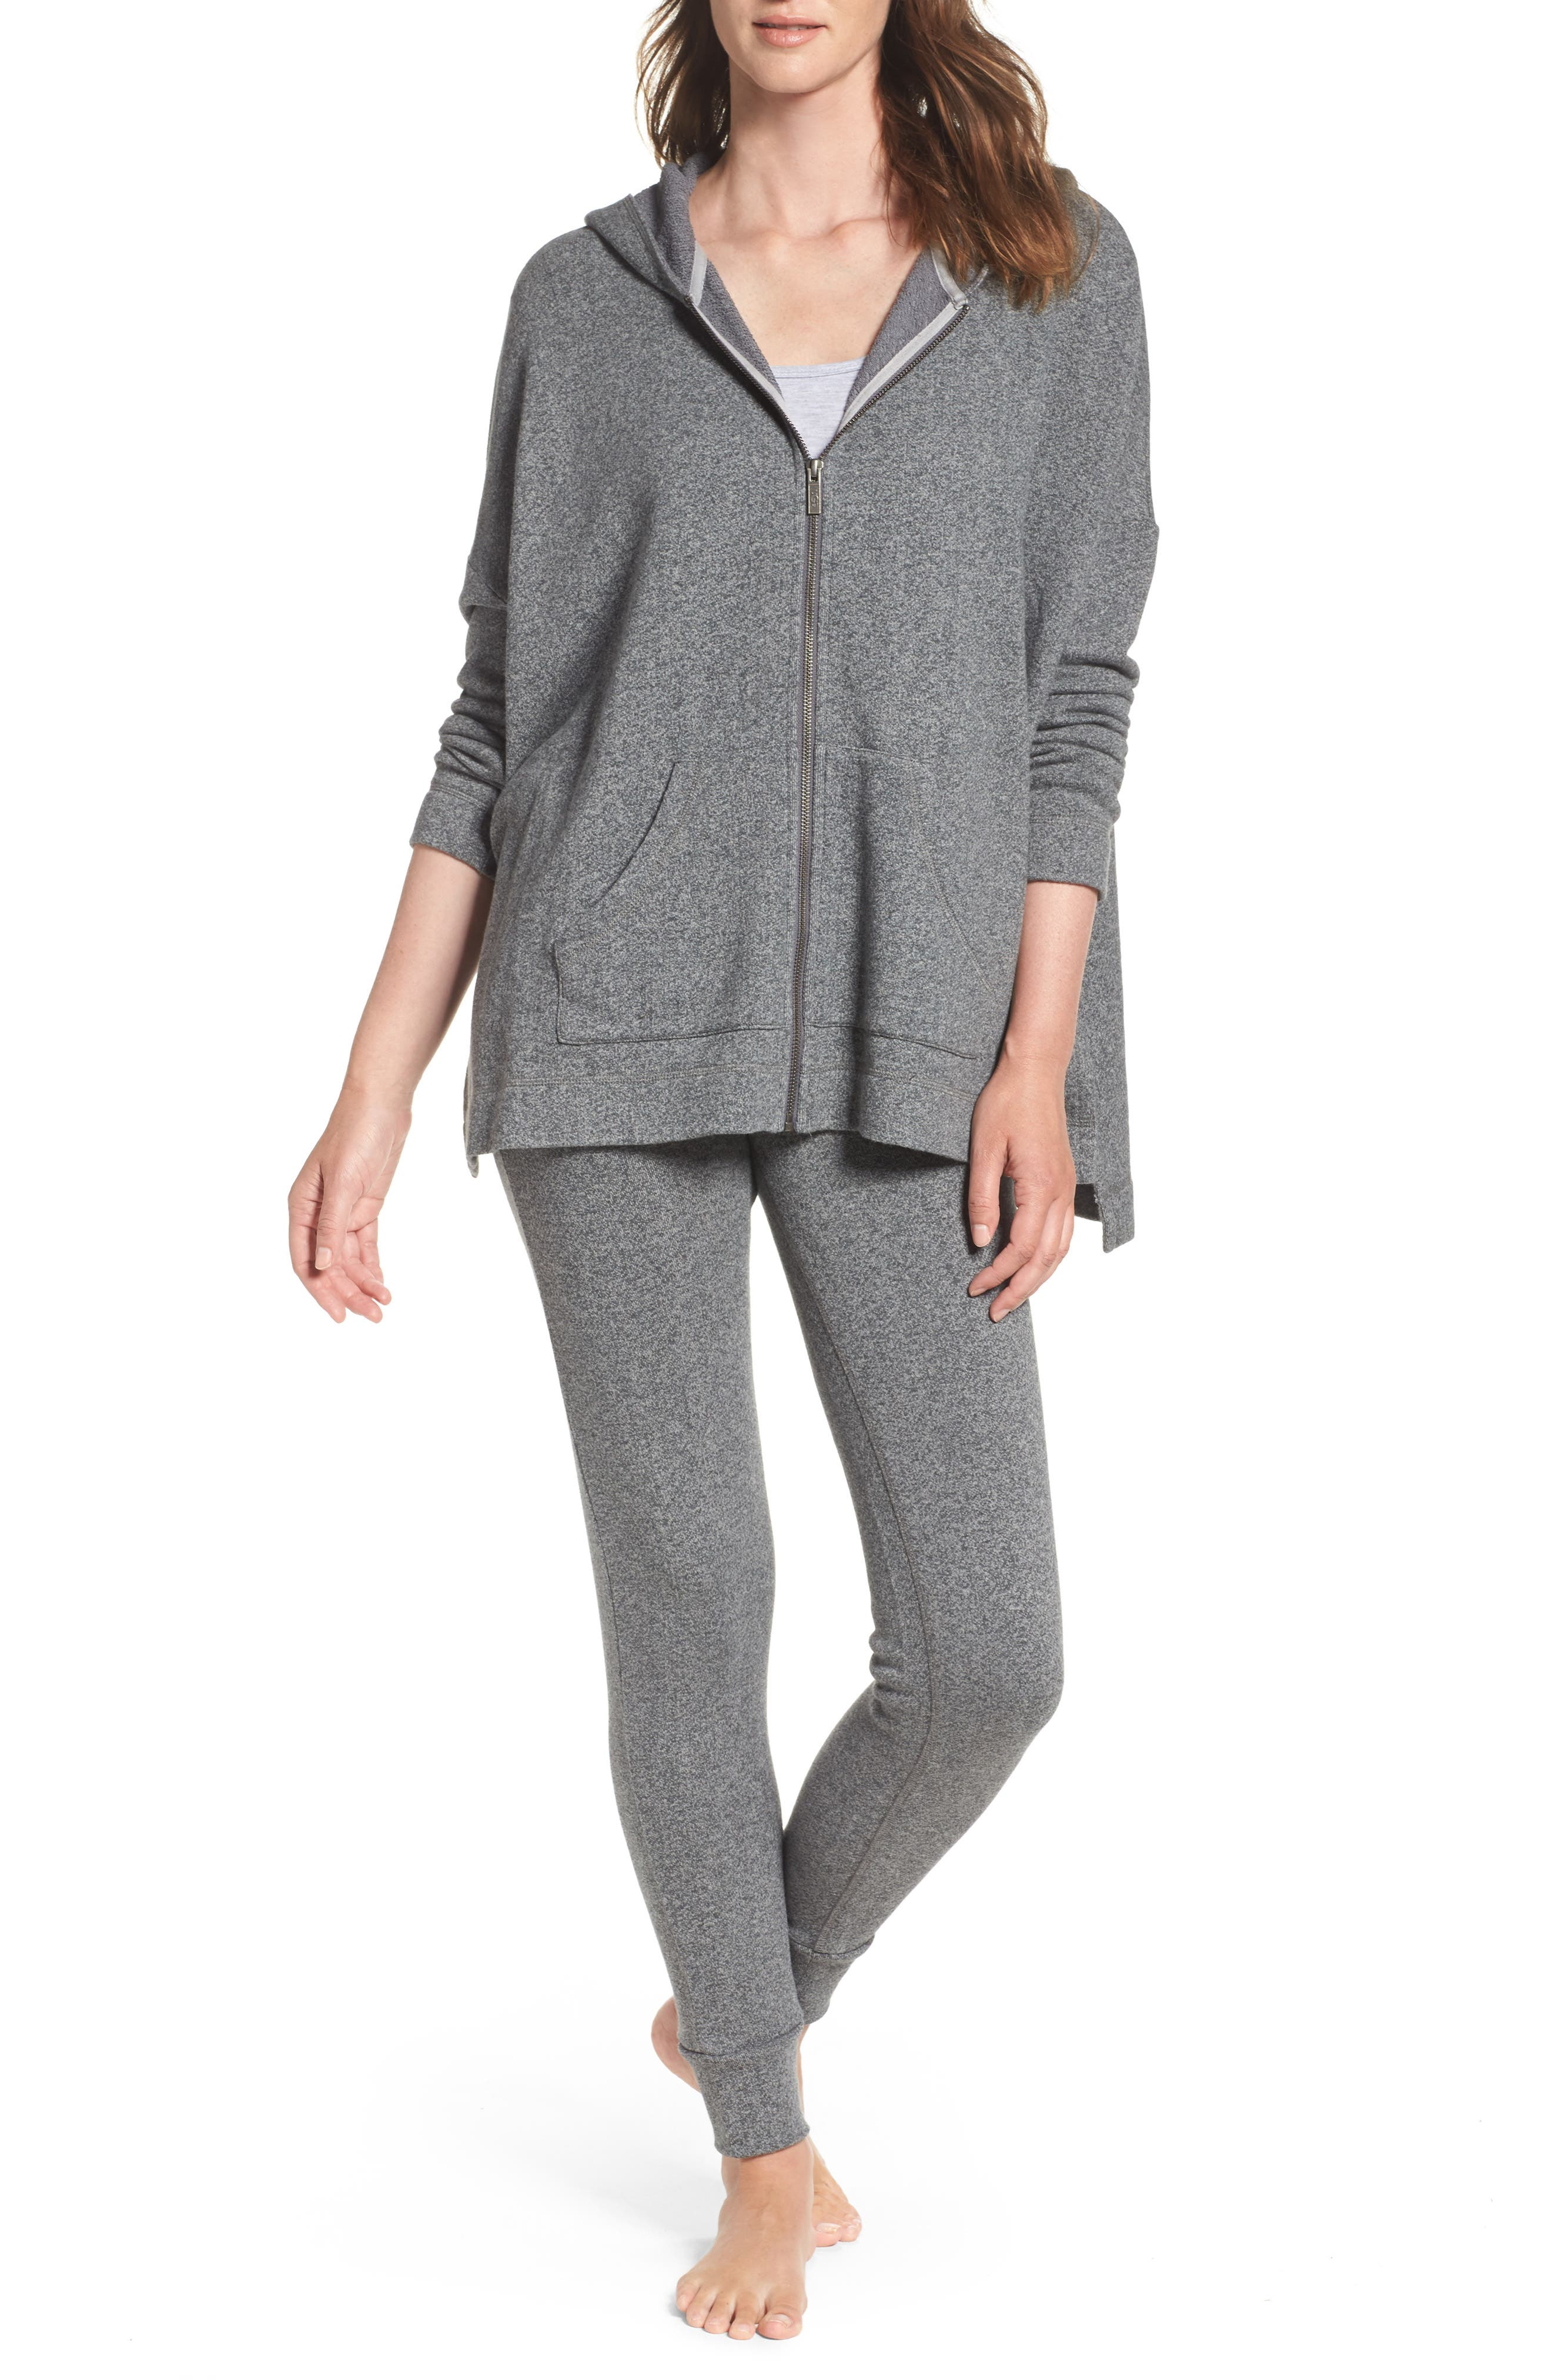 Clementine Terrry Sweatpants,                             Alternate thumbnail 5, color,                             Charcoal Heather